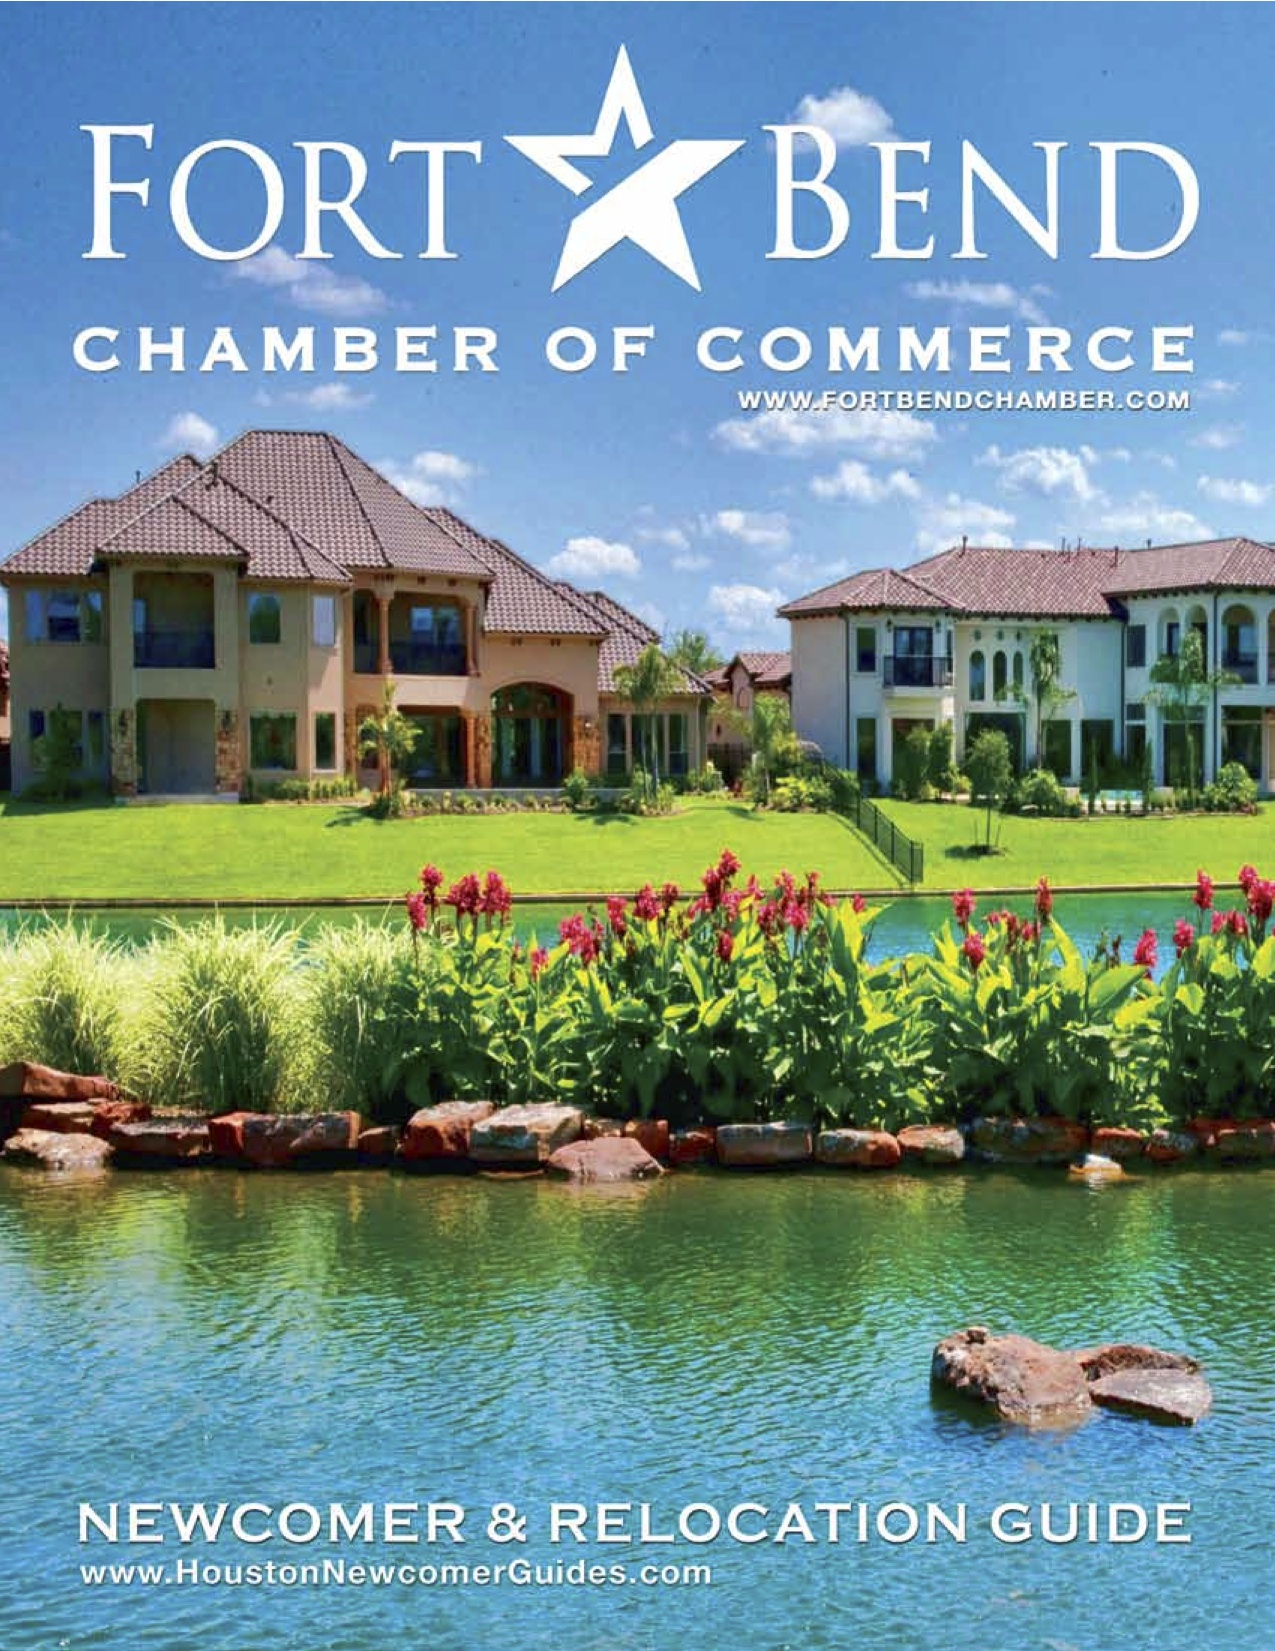 Fort Bend Chamber cover